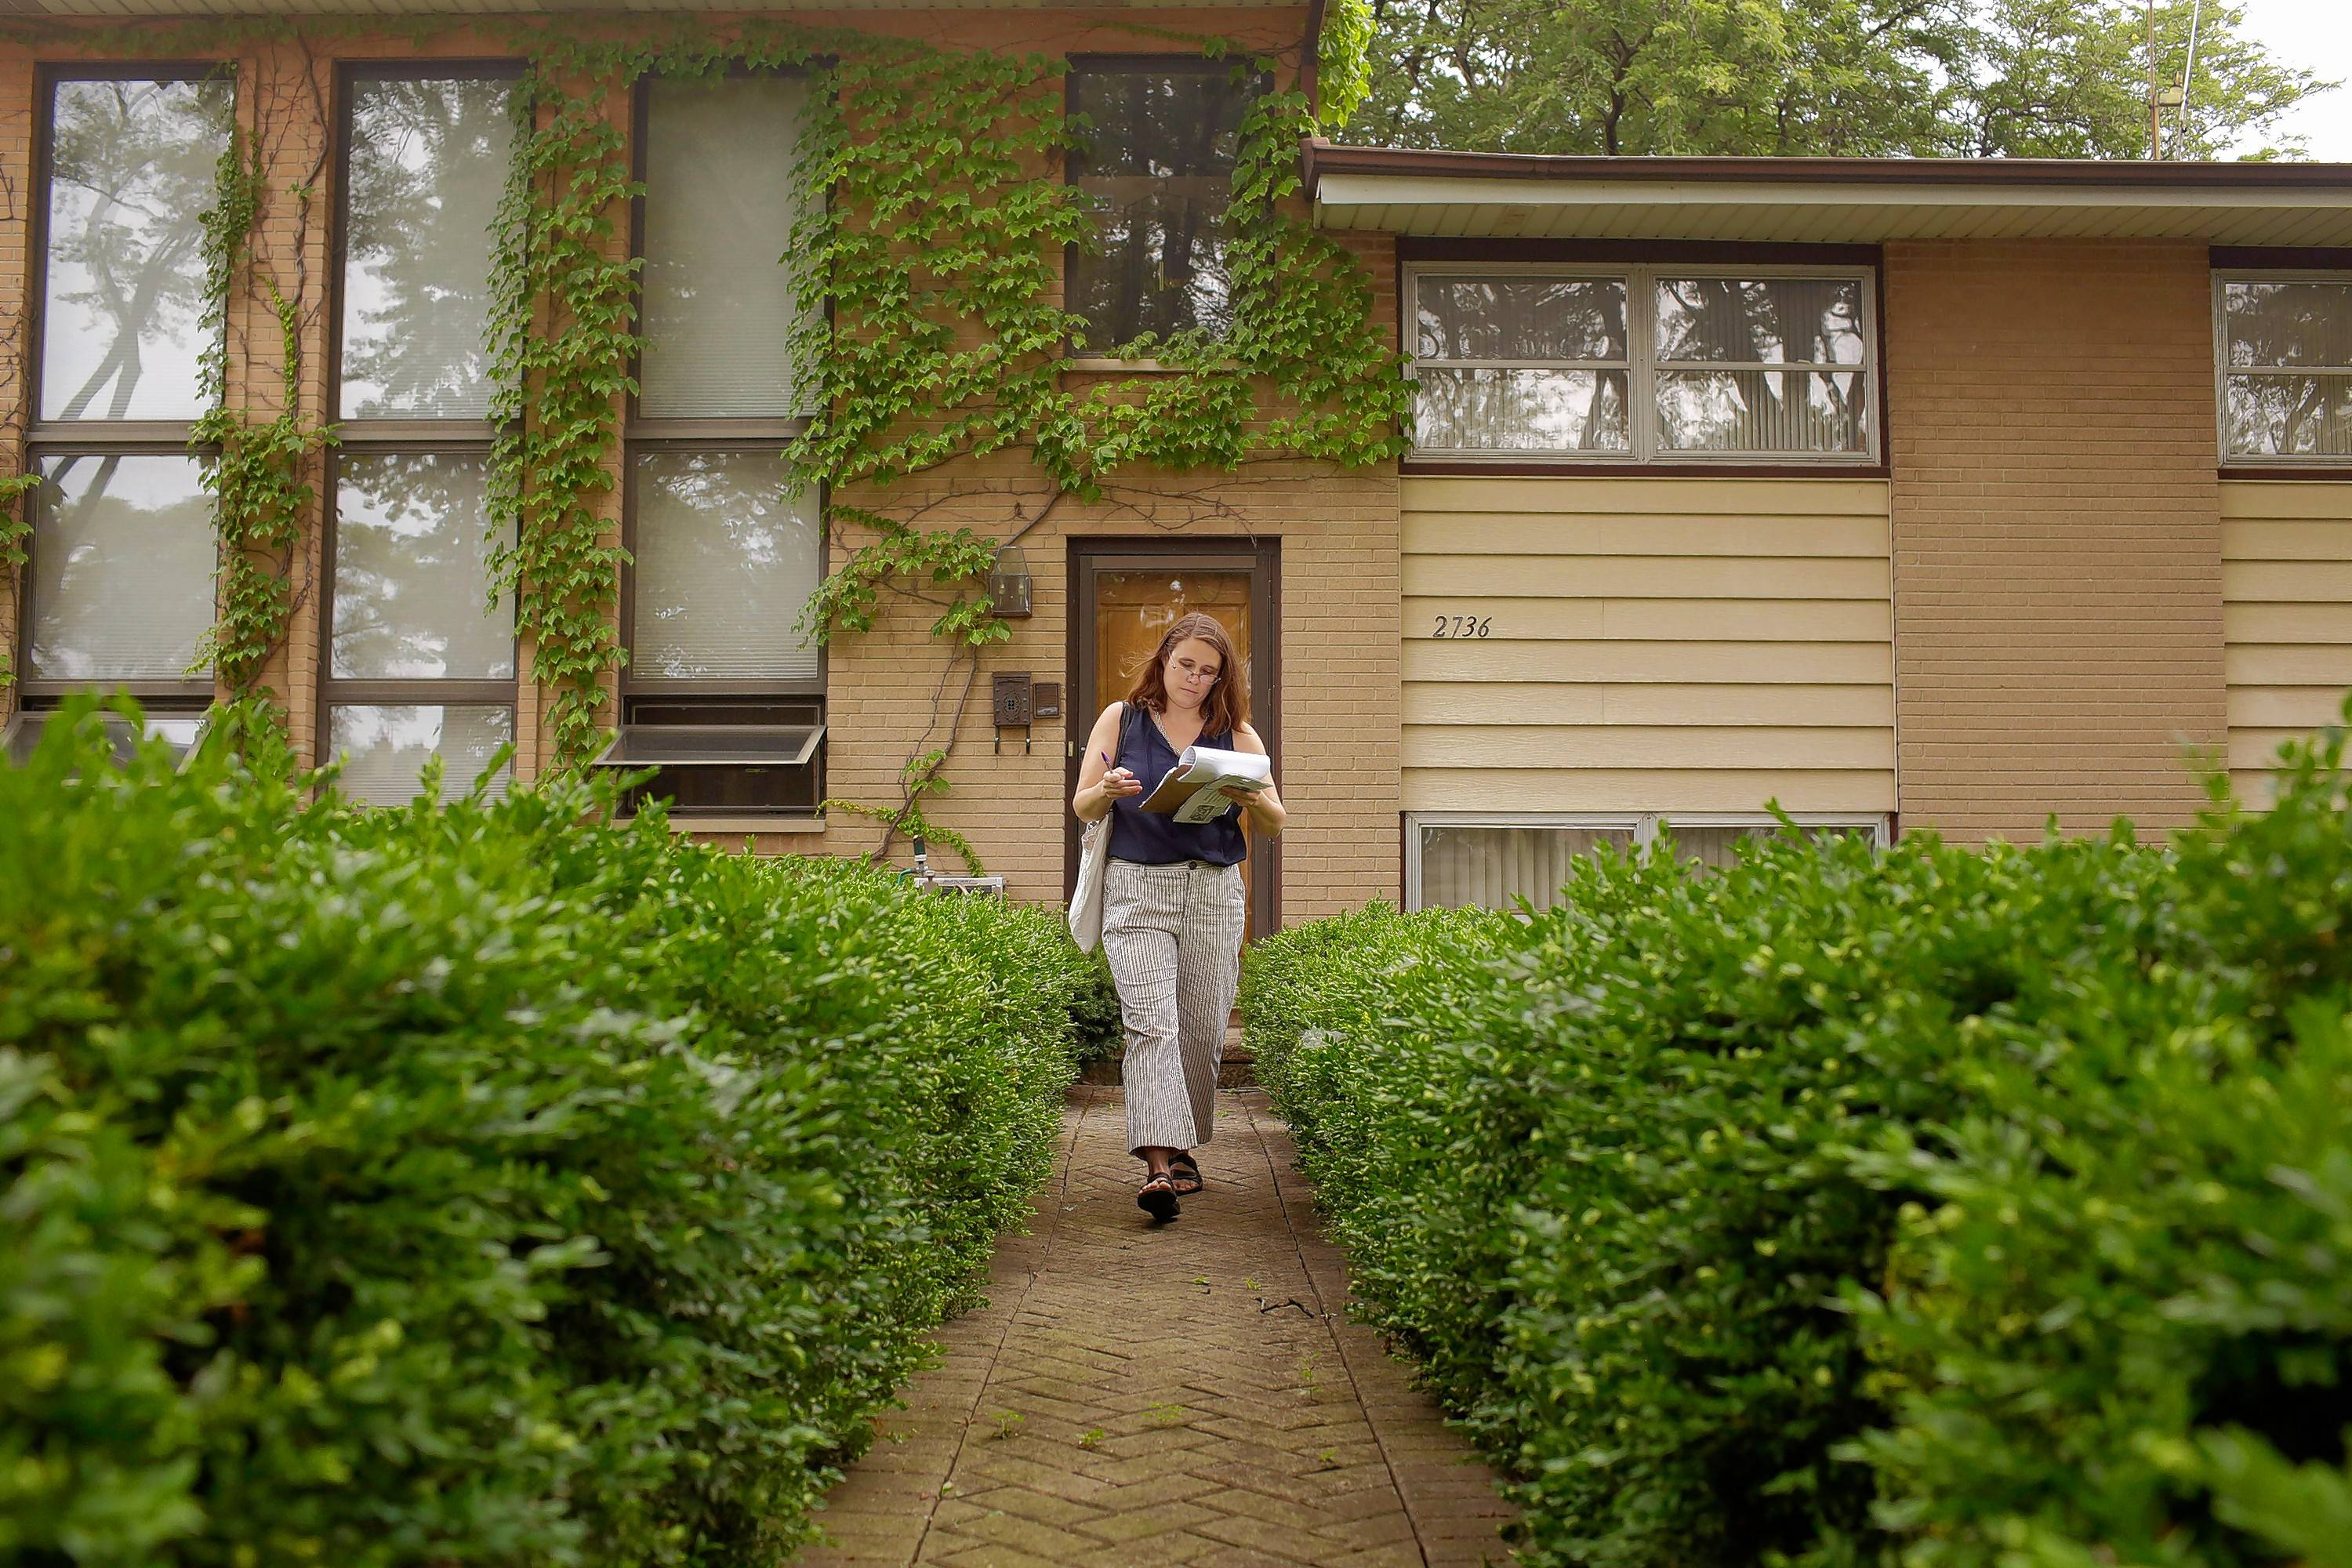 Amanda Biela, running for the Illinois House from the 15th District, canvasses a neighborhood in Glenview.